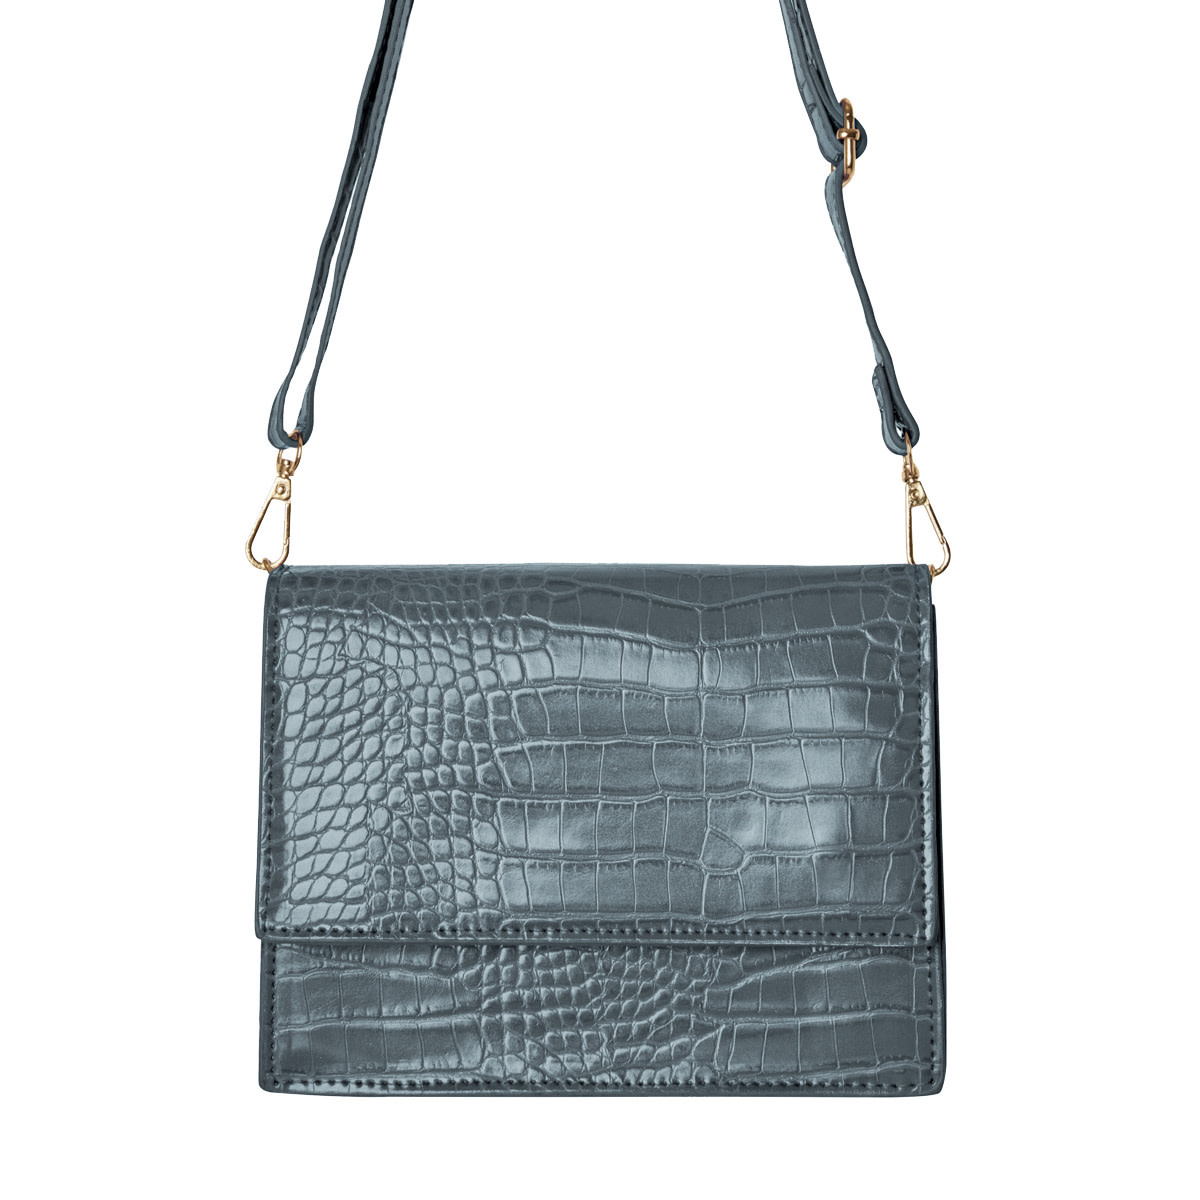 With love Bag Uptown girl - grey 21cm x 13.50cm x 7cm